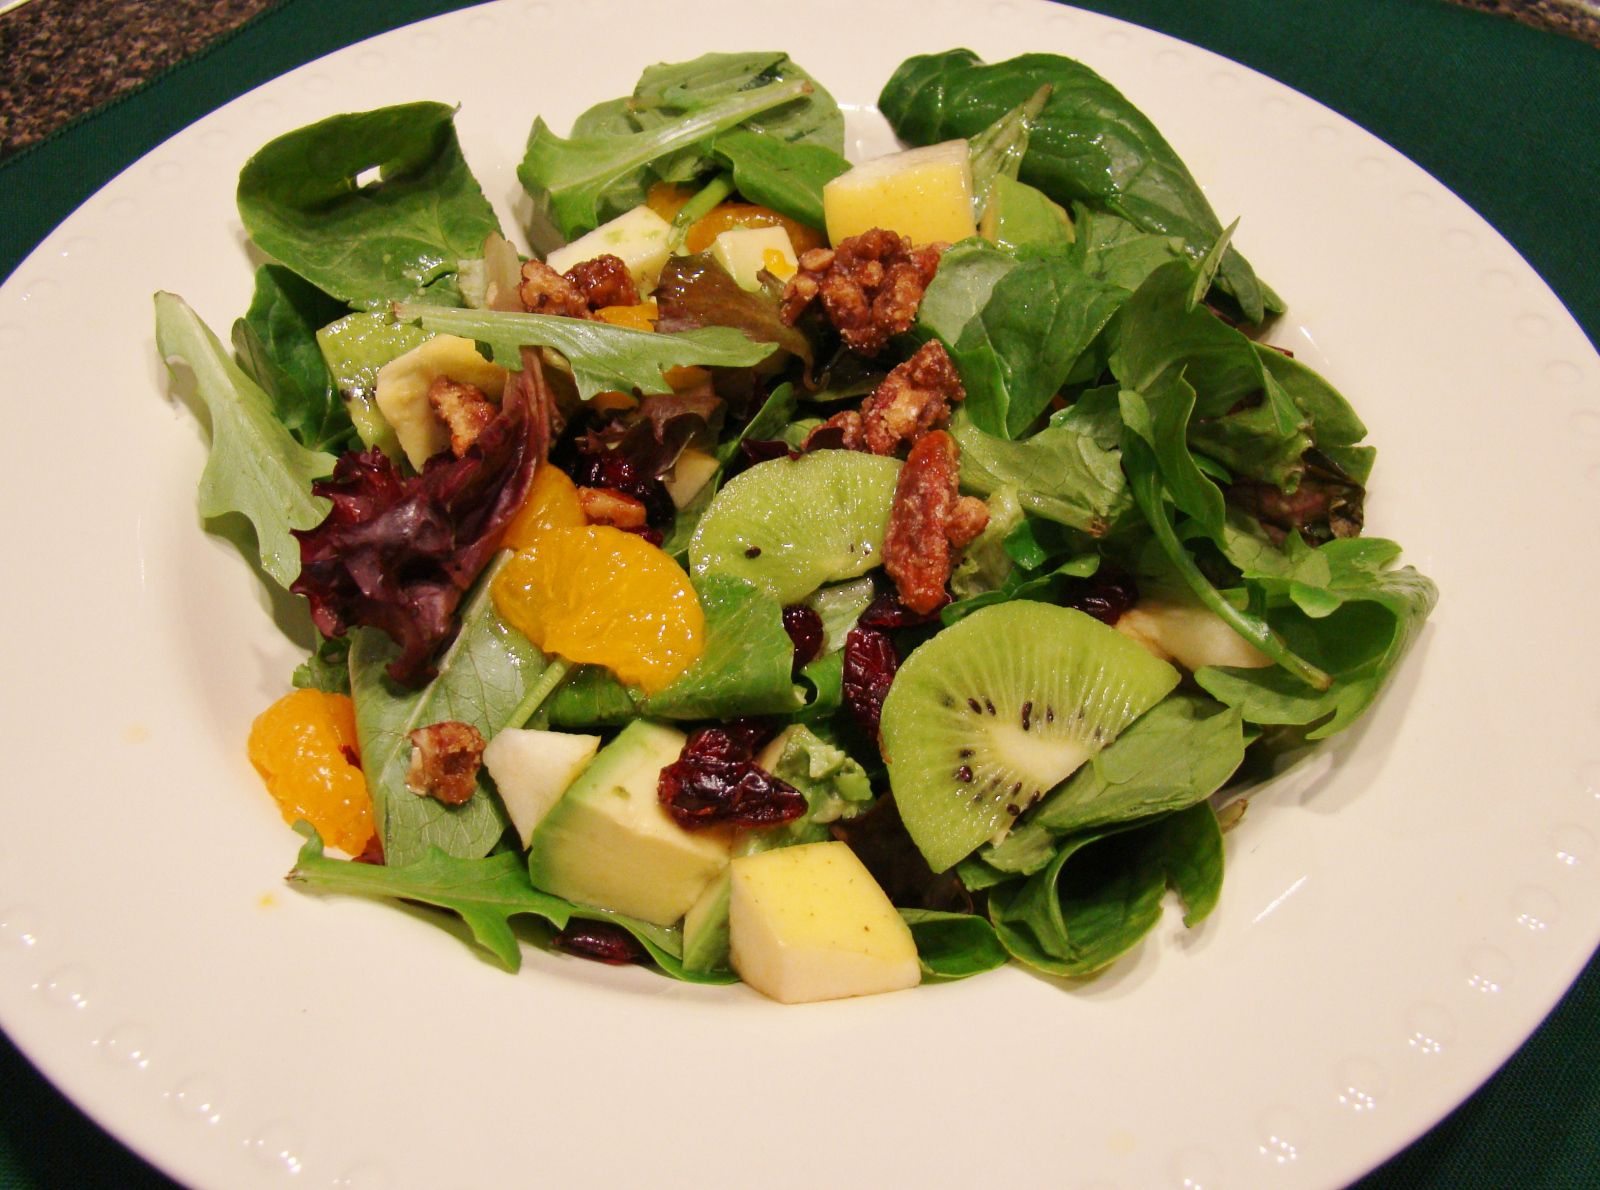 Candied Pecan, Fruit, and Avocado Salad with O'Hana Tropical Dressing